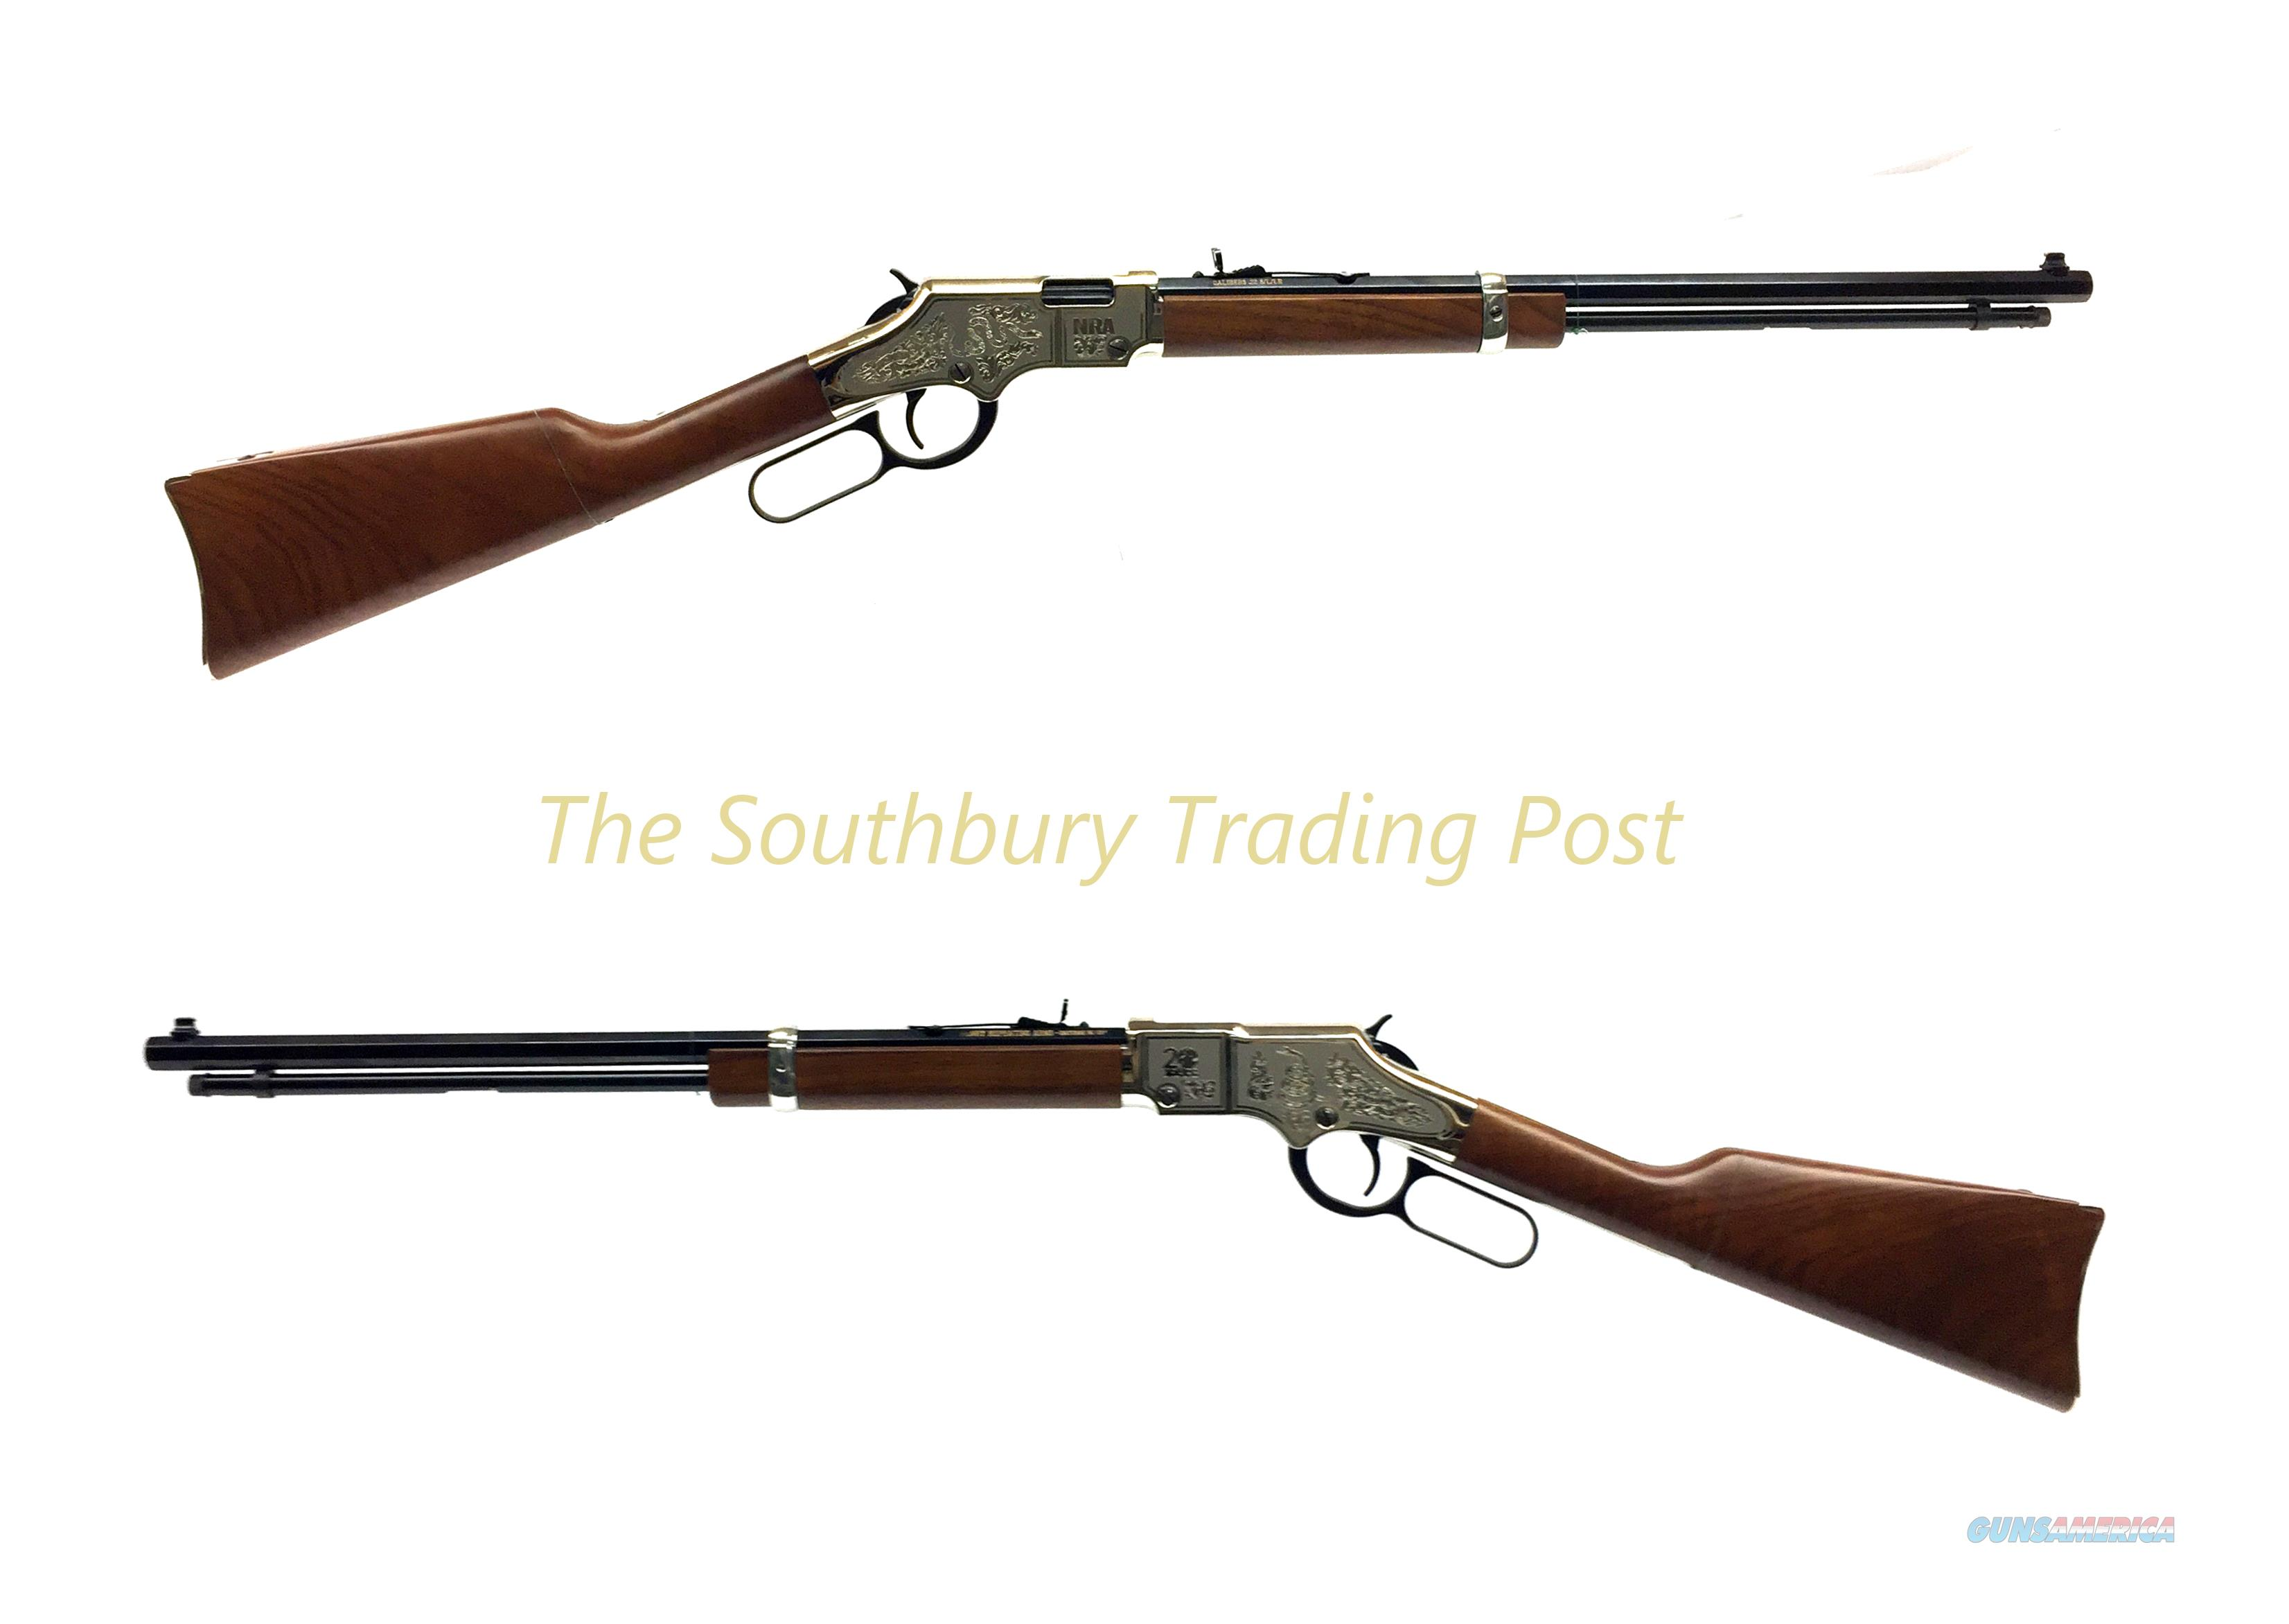 Henry NRA 20th Year Anniversary Edition .22 LR Lever-Action Rifle  Guns > Rifles > Henry Rifle Company